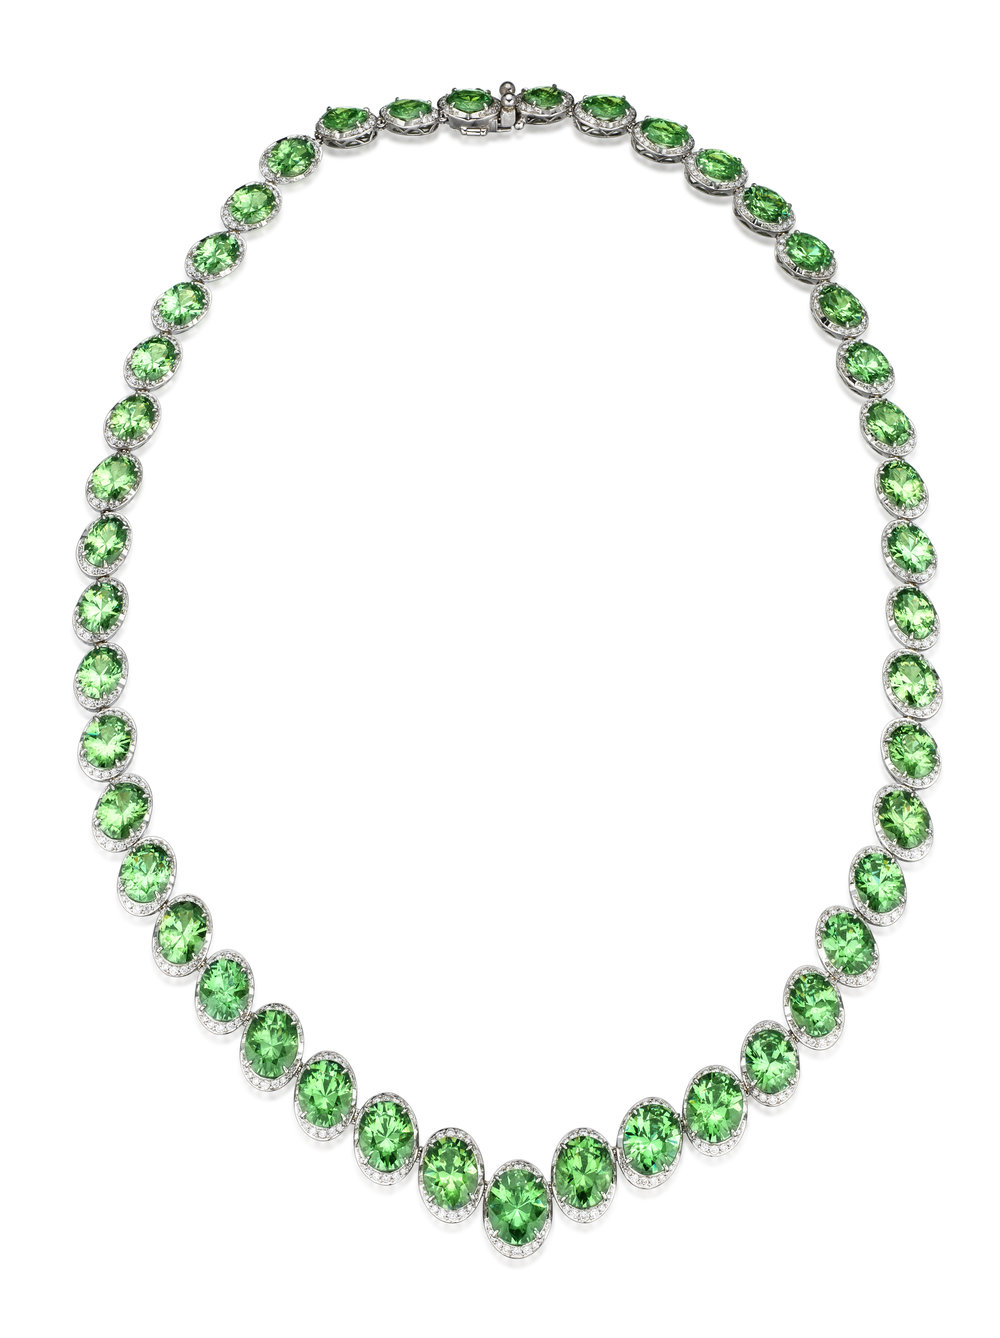 Demantoid Garnet and Diamond Necklace